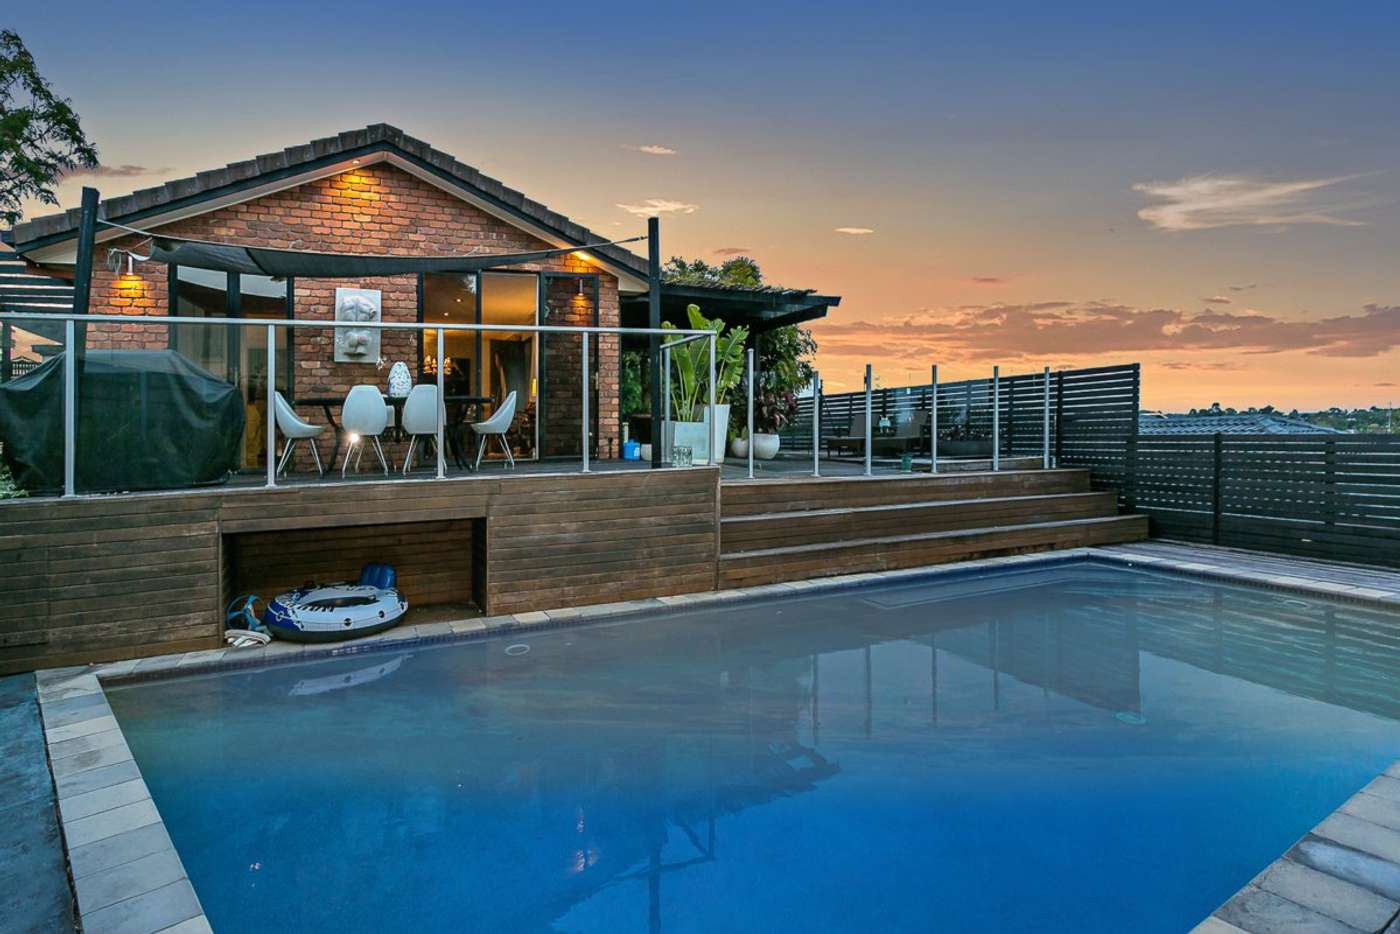 Main view of Homely house listing, 16 Explorers Way, Worongary QLD 4213